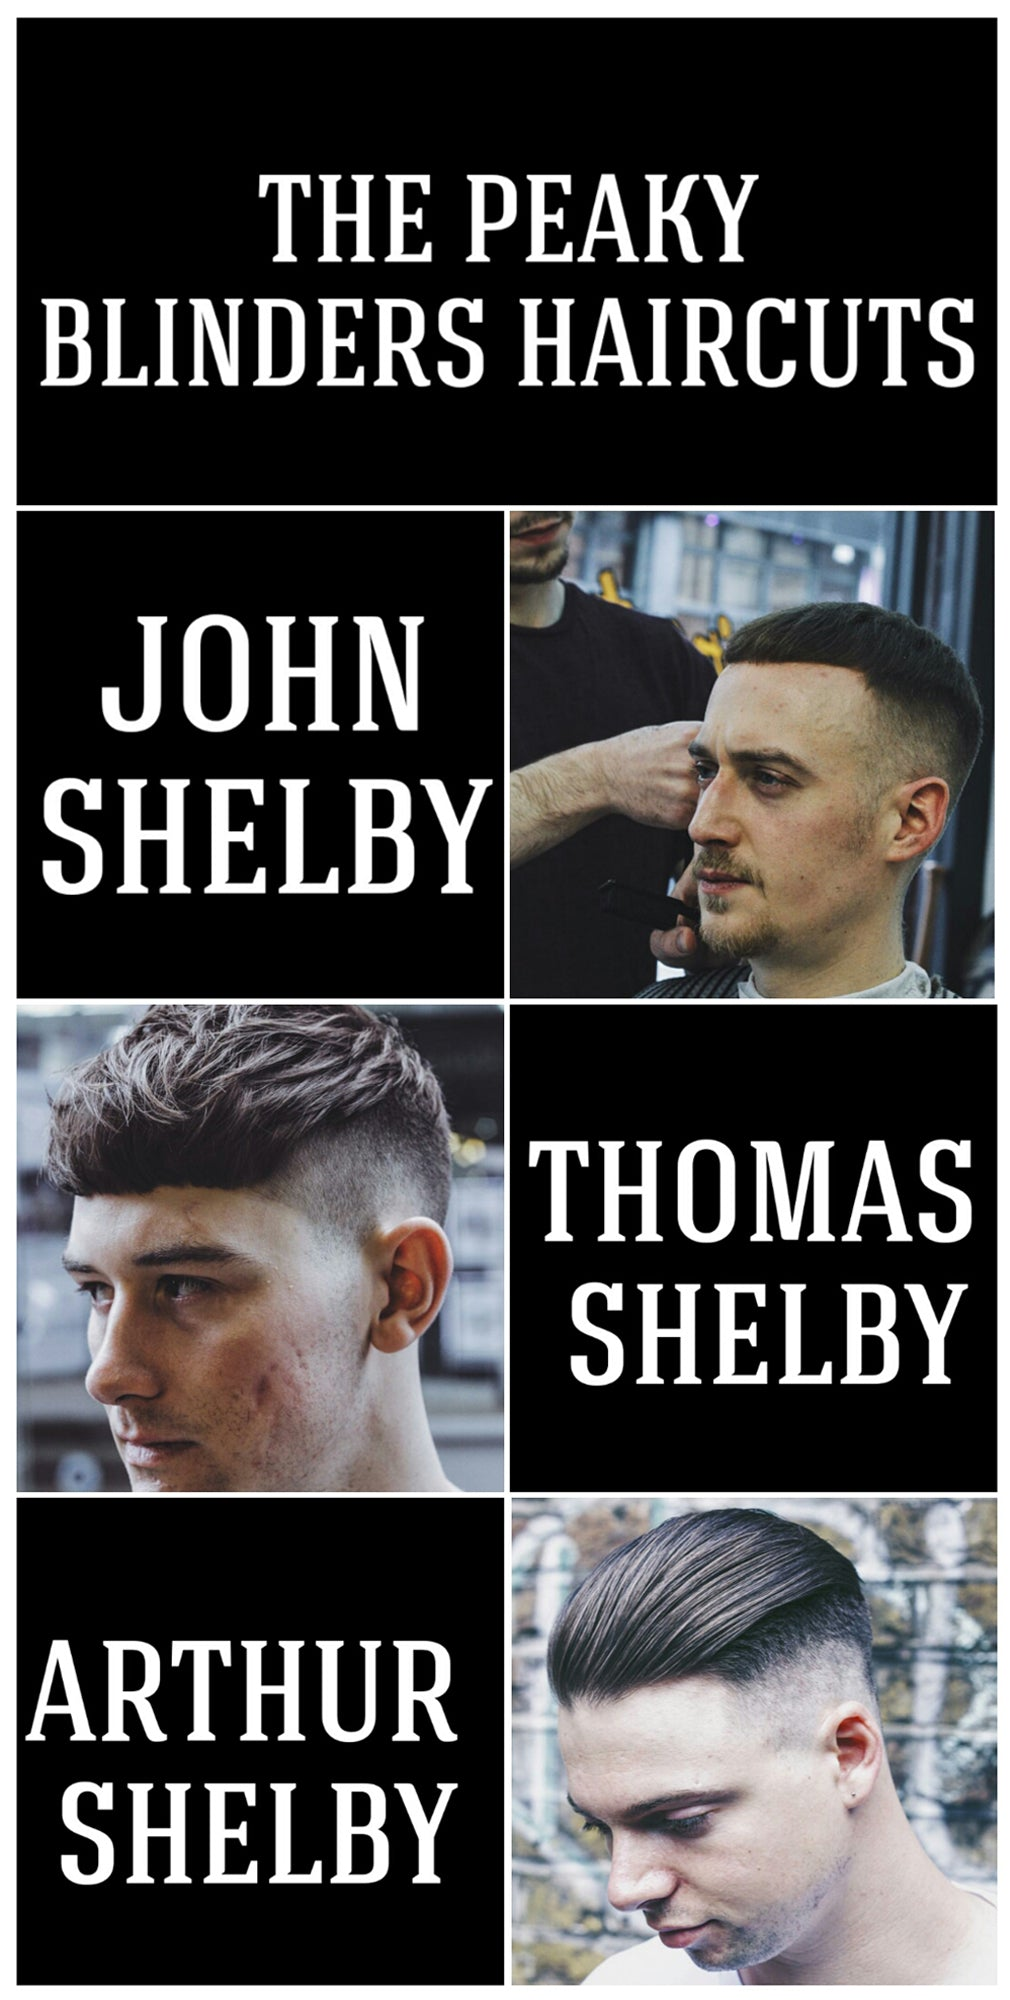 Peaky Blinders Haircut Style Name | hairstylegalleries.com